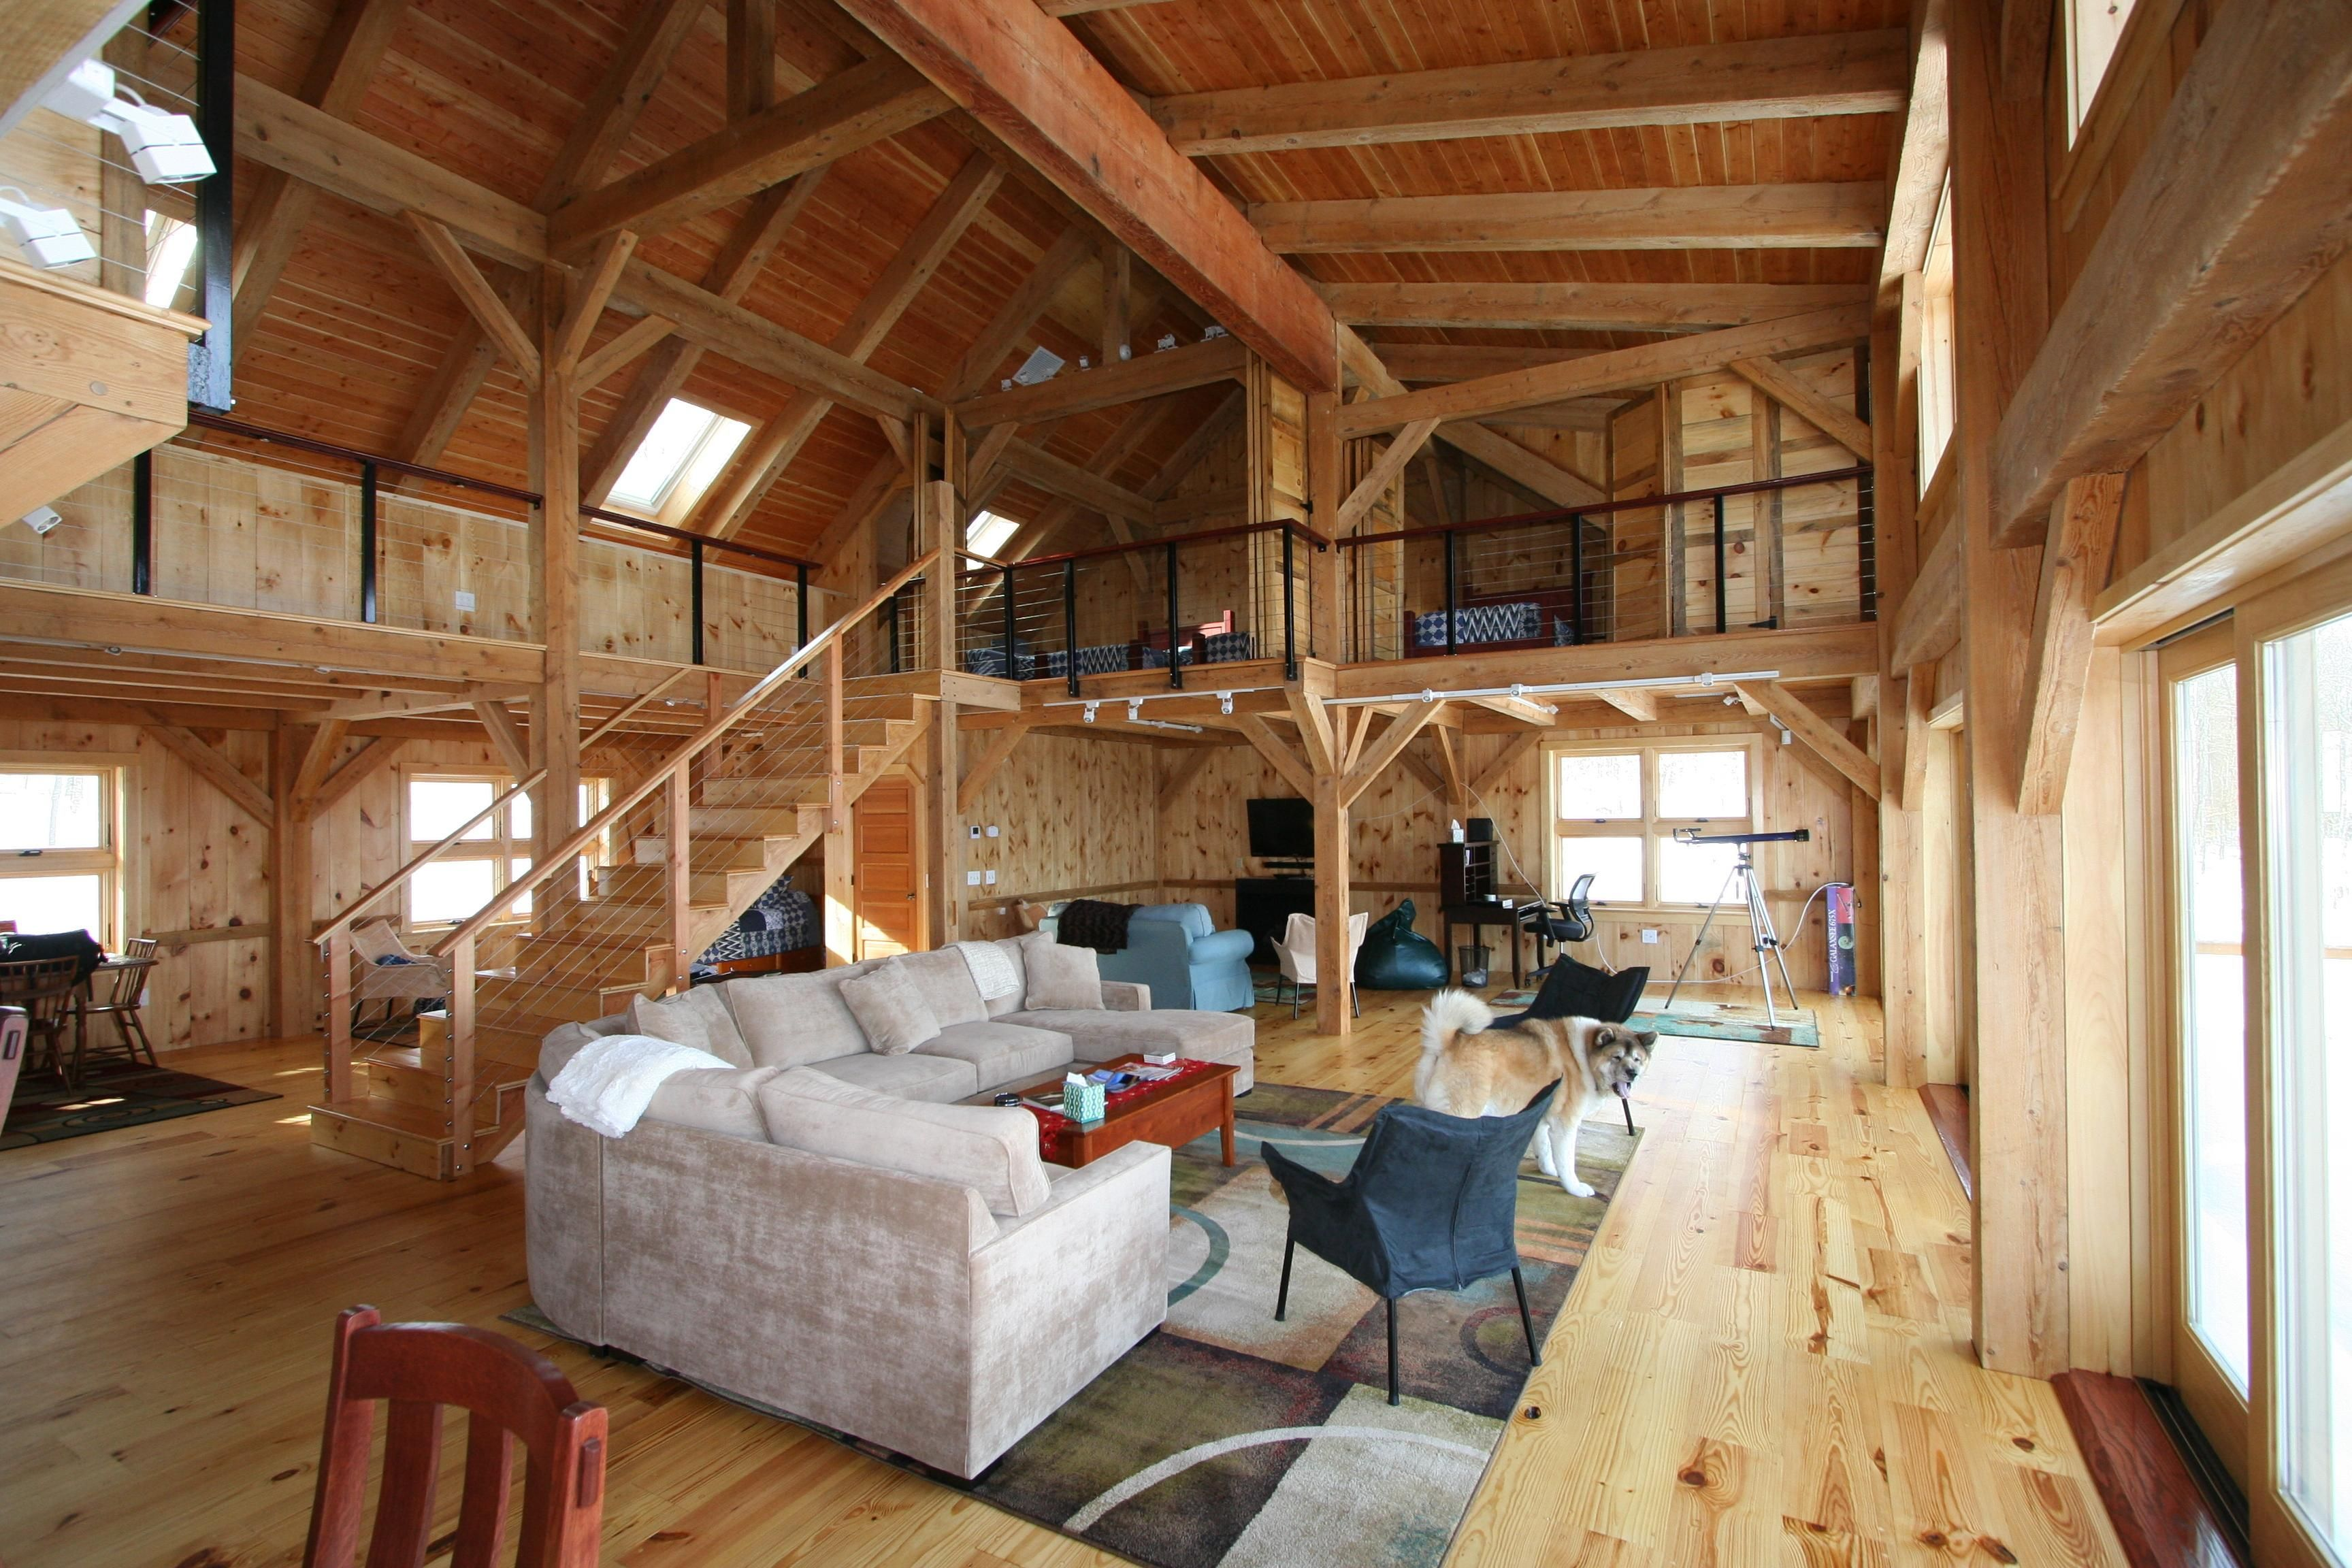 timber-frame-interior-1 from Vermont timber works | barn home ideas ...